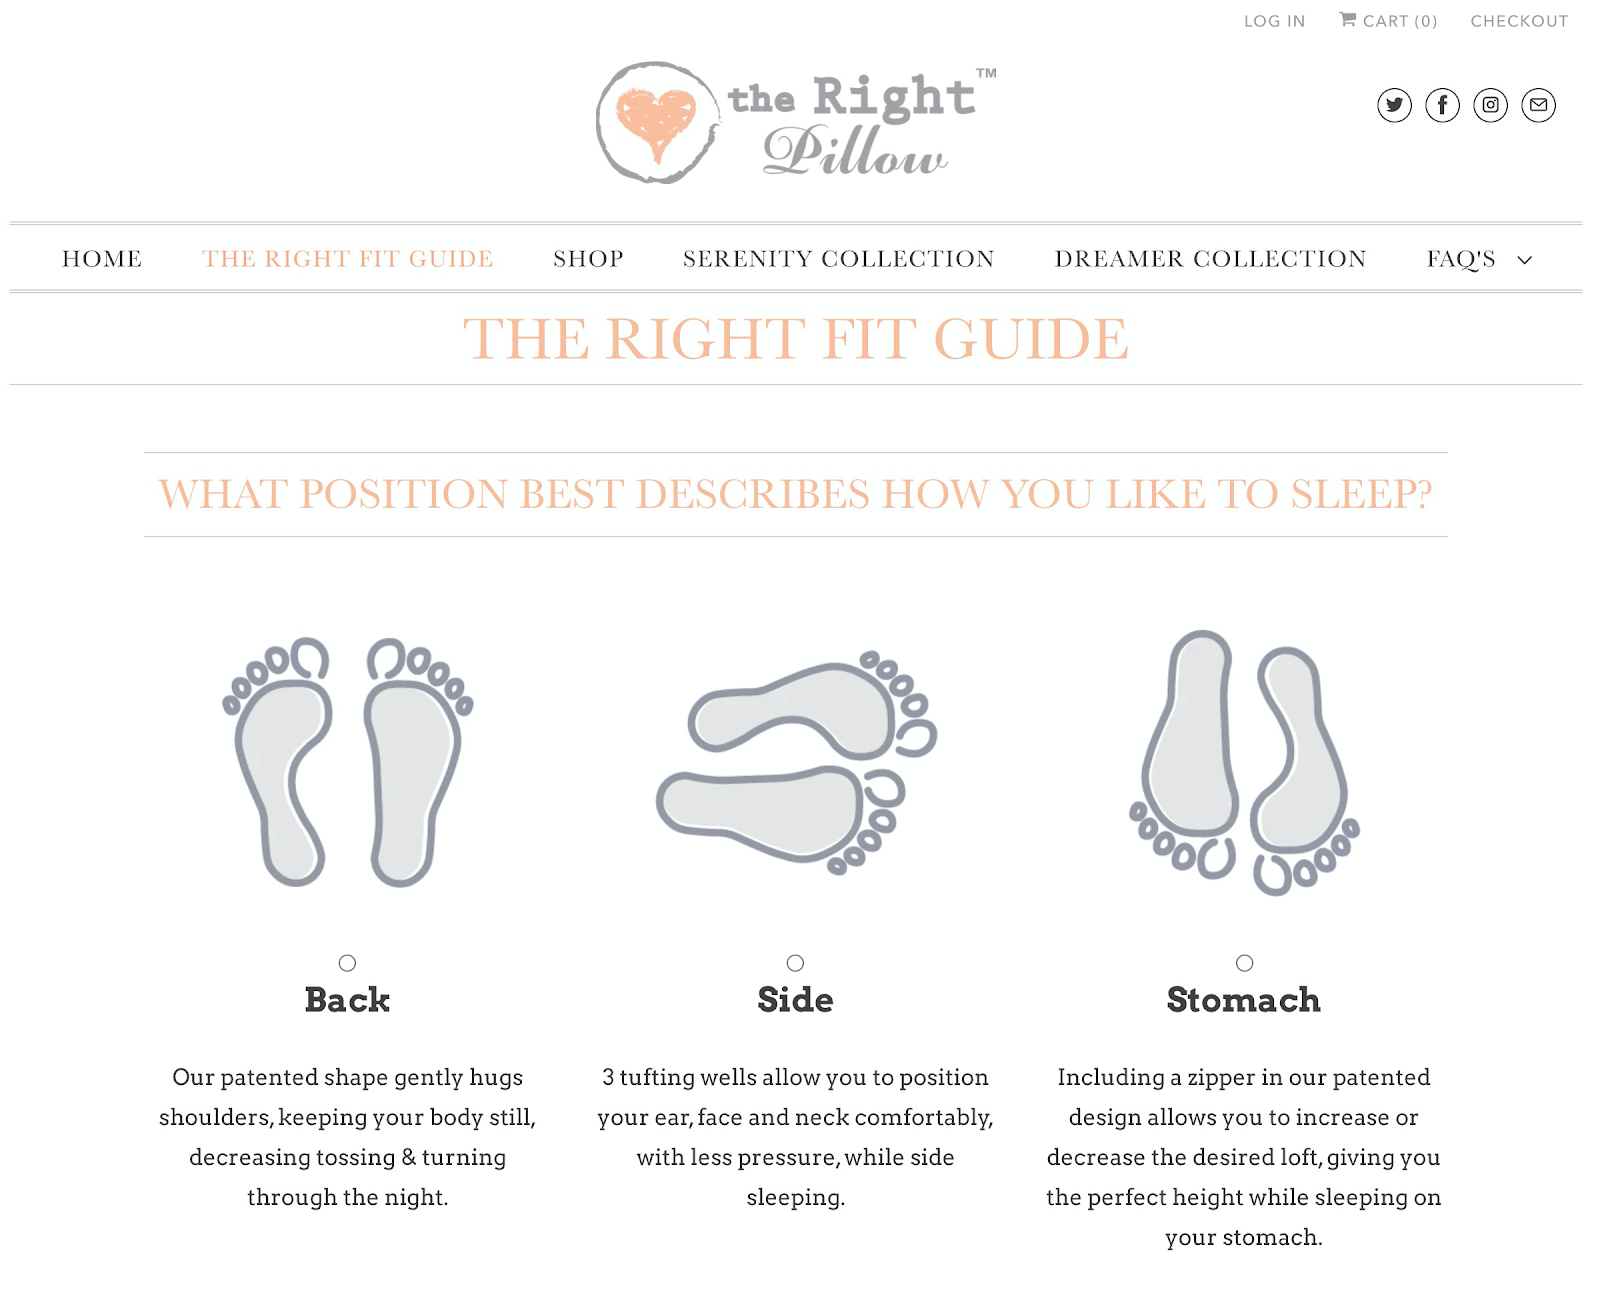 An interactive quiz for the Right Pillow.